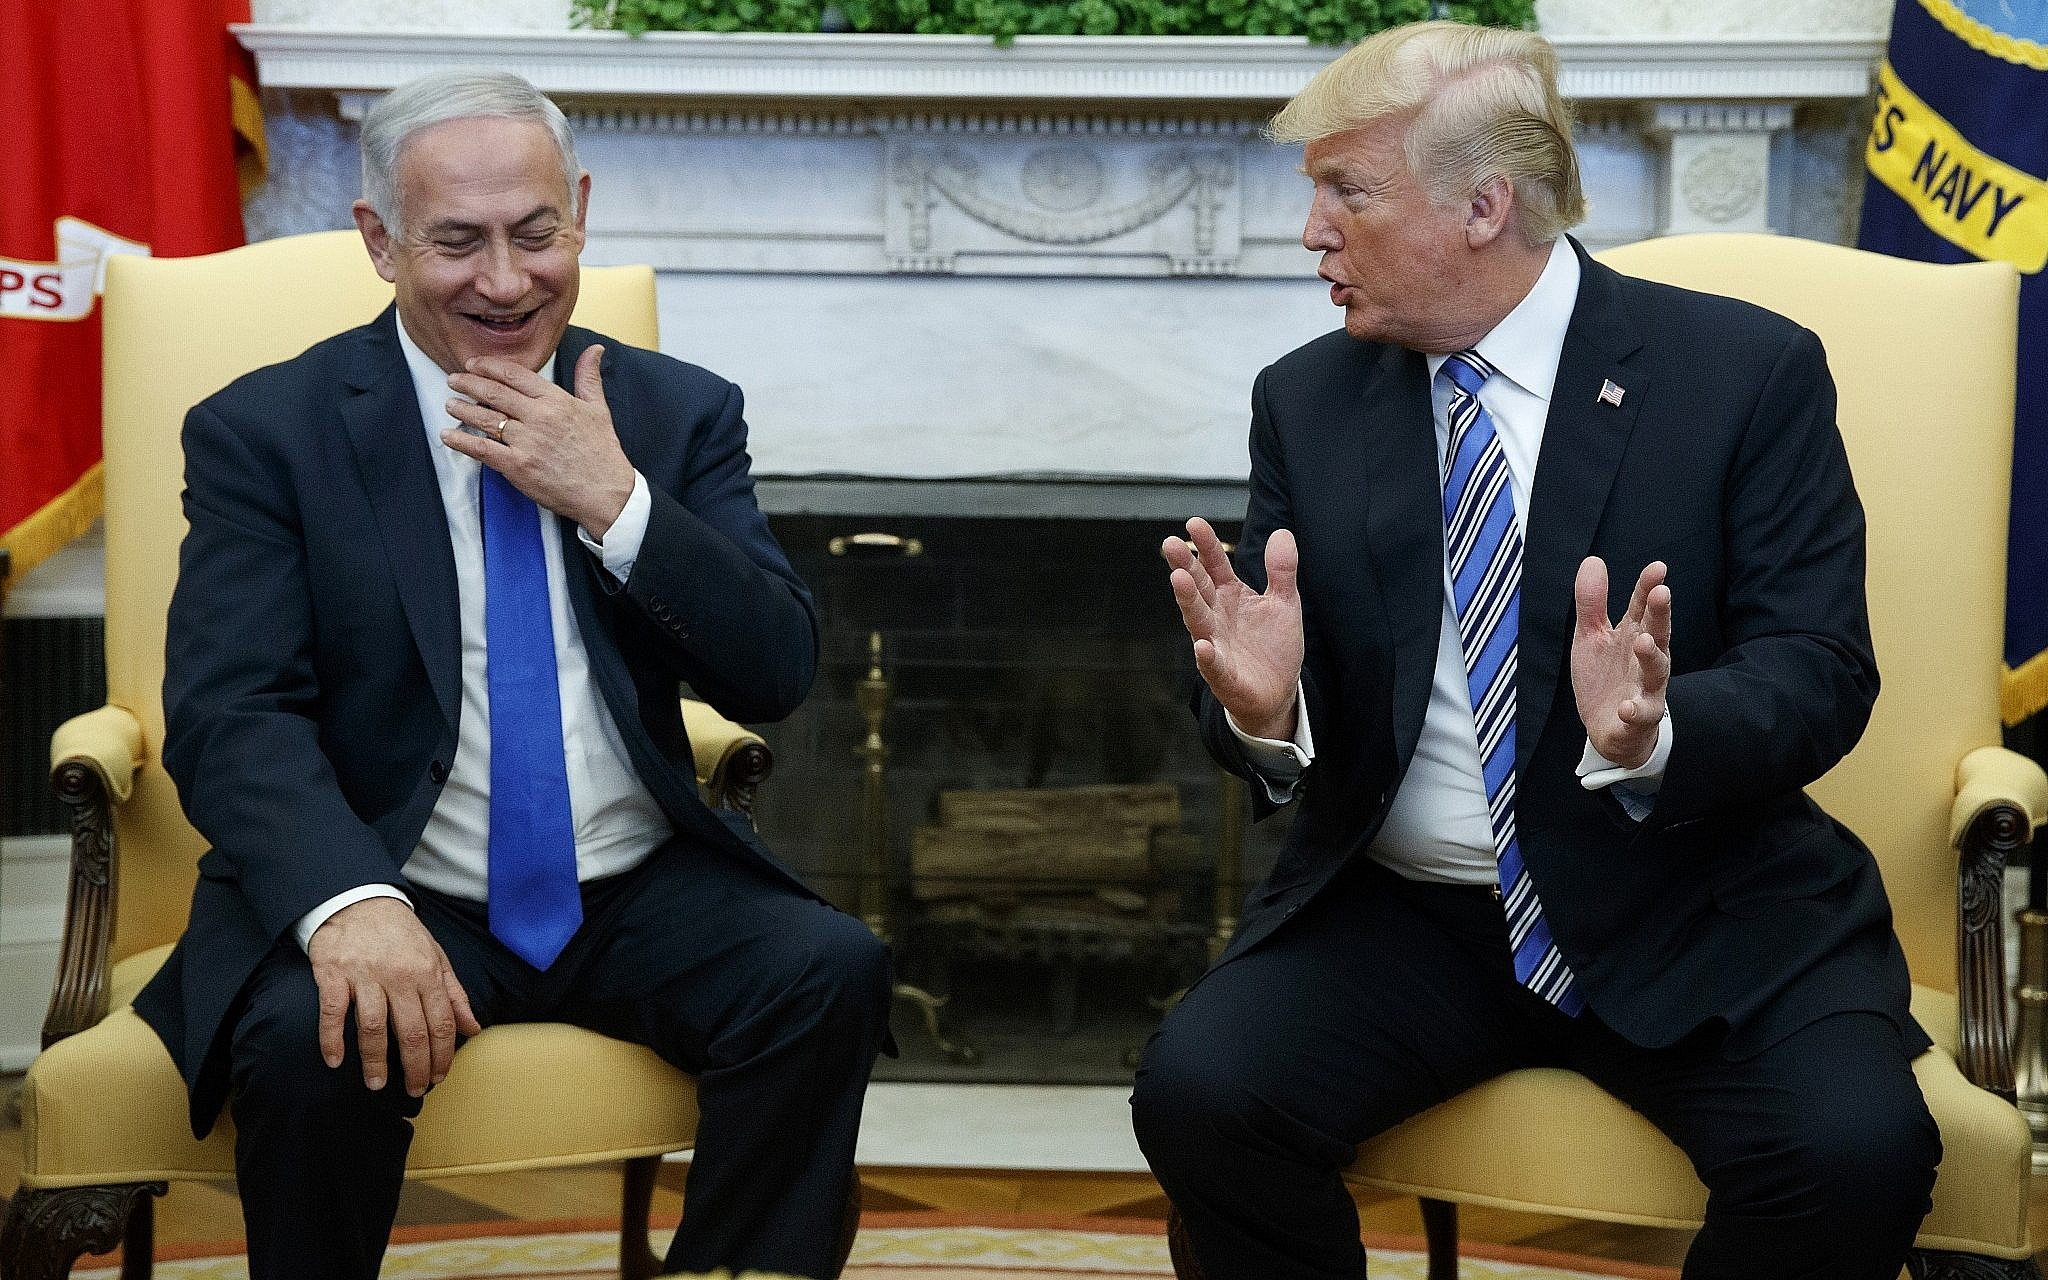 65d41a66e2 US President Donald Trump (R) meets with Prime Minister Benjamin Netanyahu  in the Oval